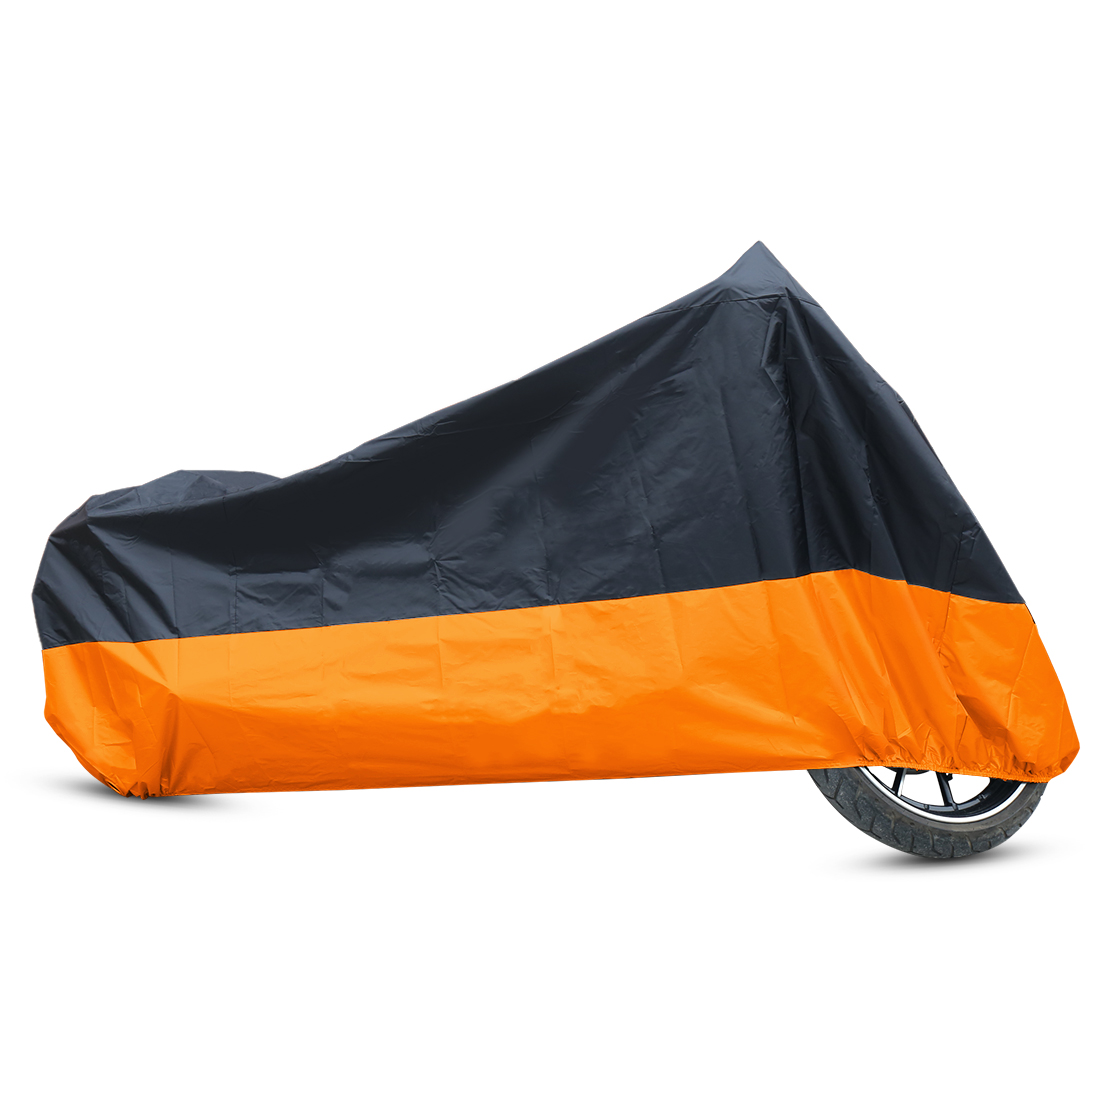 L 180T Rain Dust Motorcycle Cover Black+Orange Outdoor Waterproof UV Protector